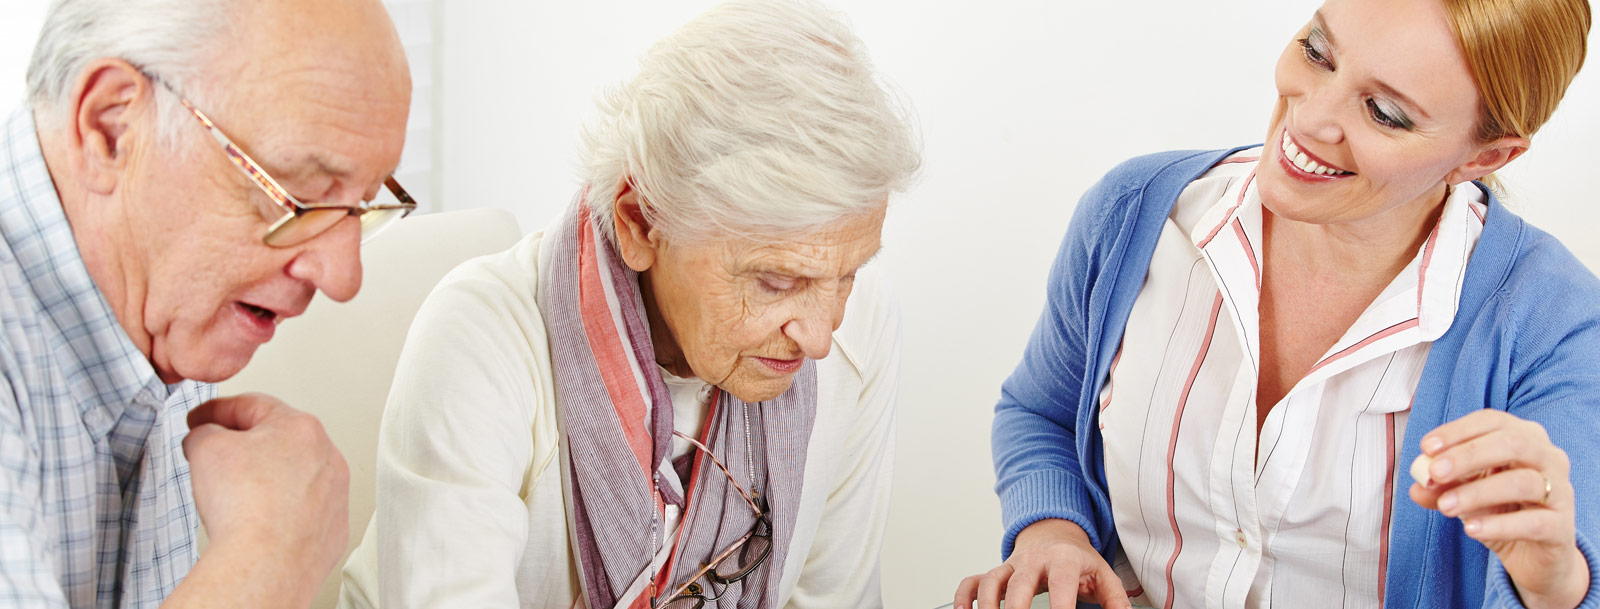 Memory care at the senior facility